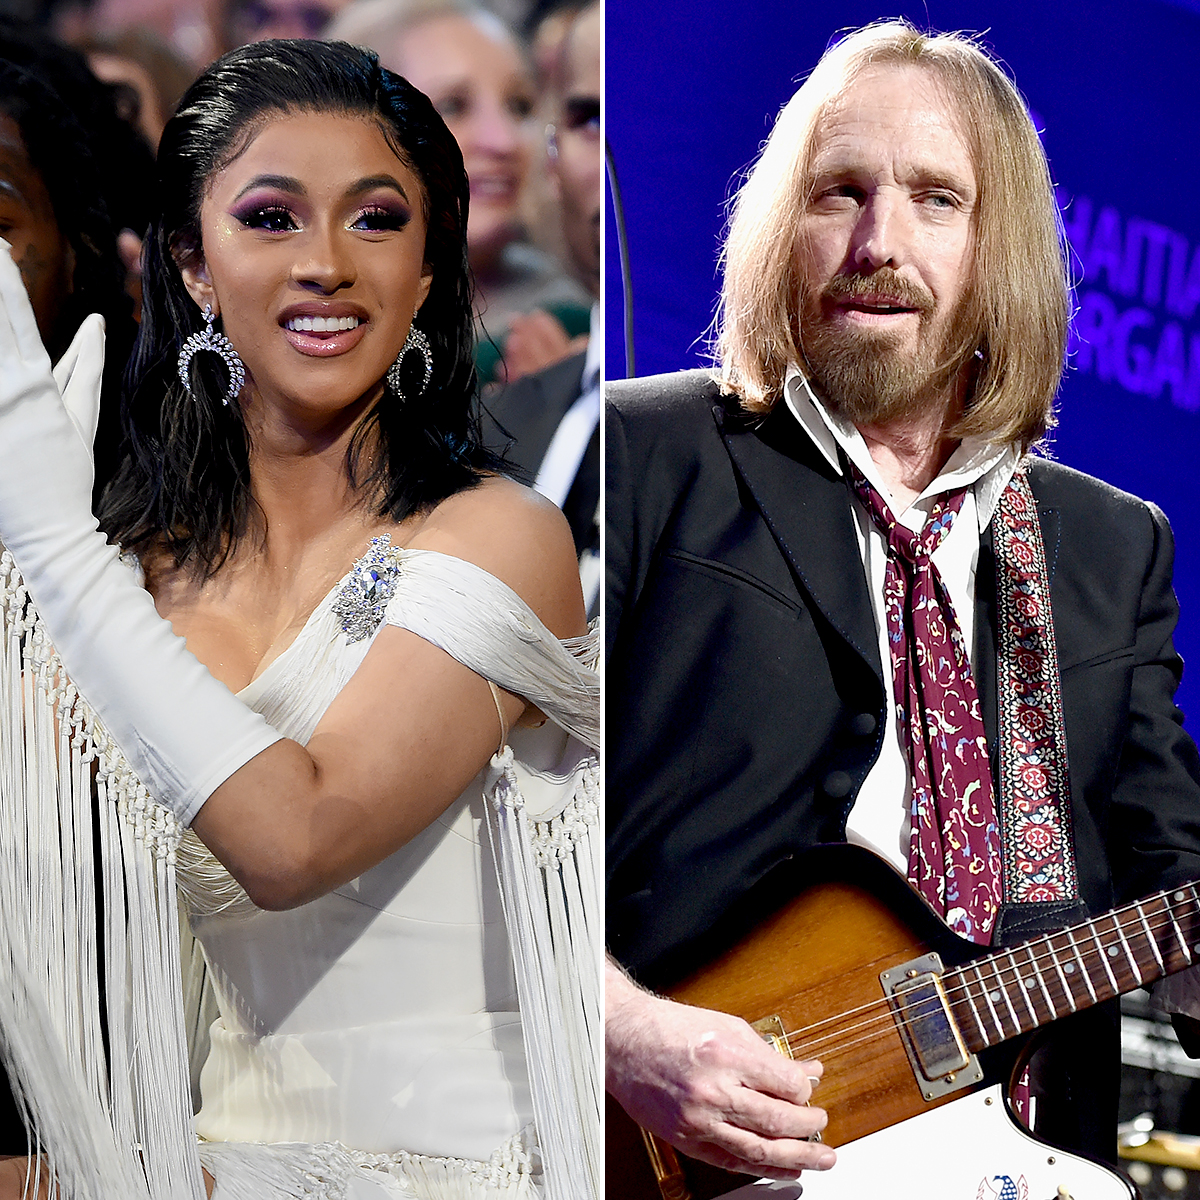 Tom Petty Tour 2019 Cardi B Thanks Late Tom Petty for Sending Flowers at Grammys 2019